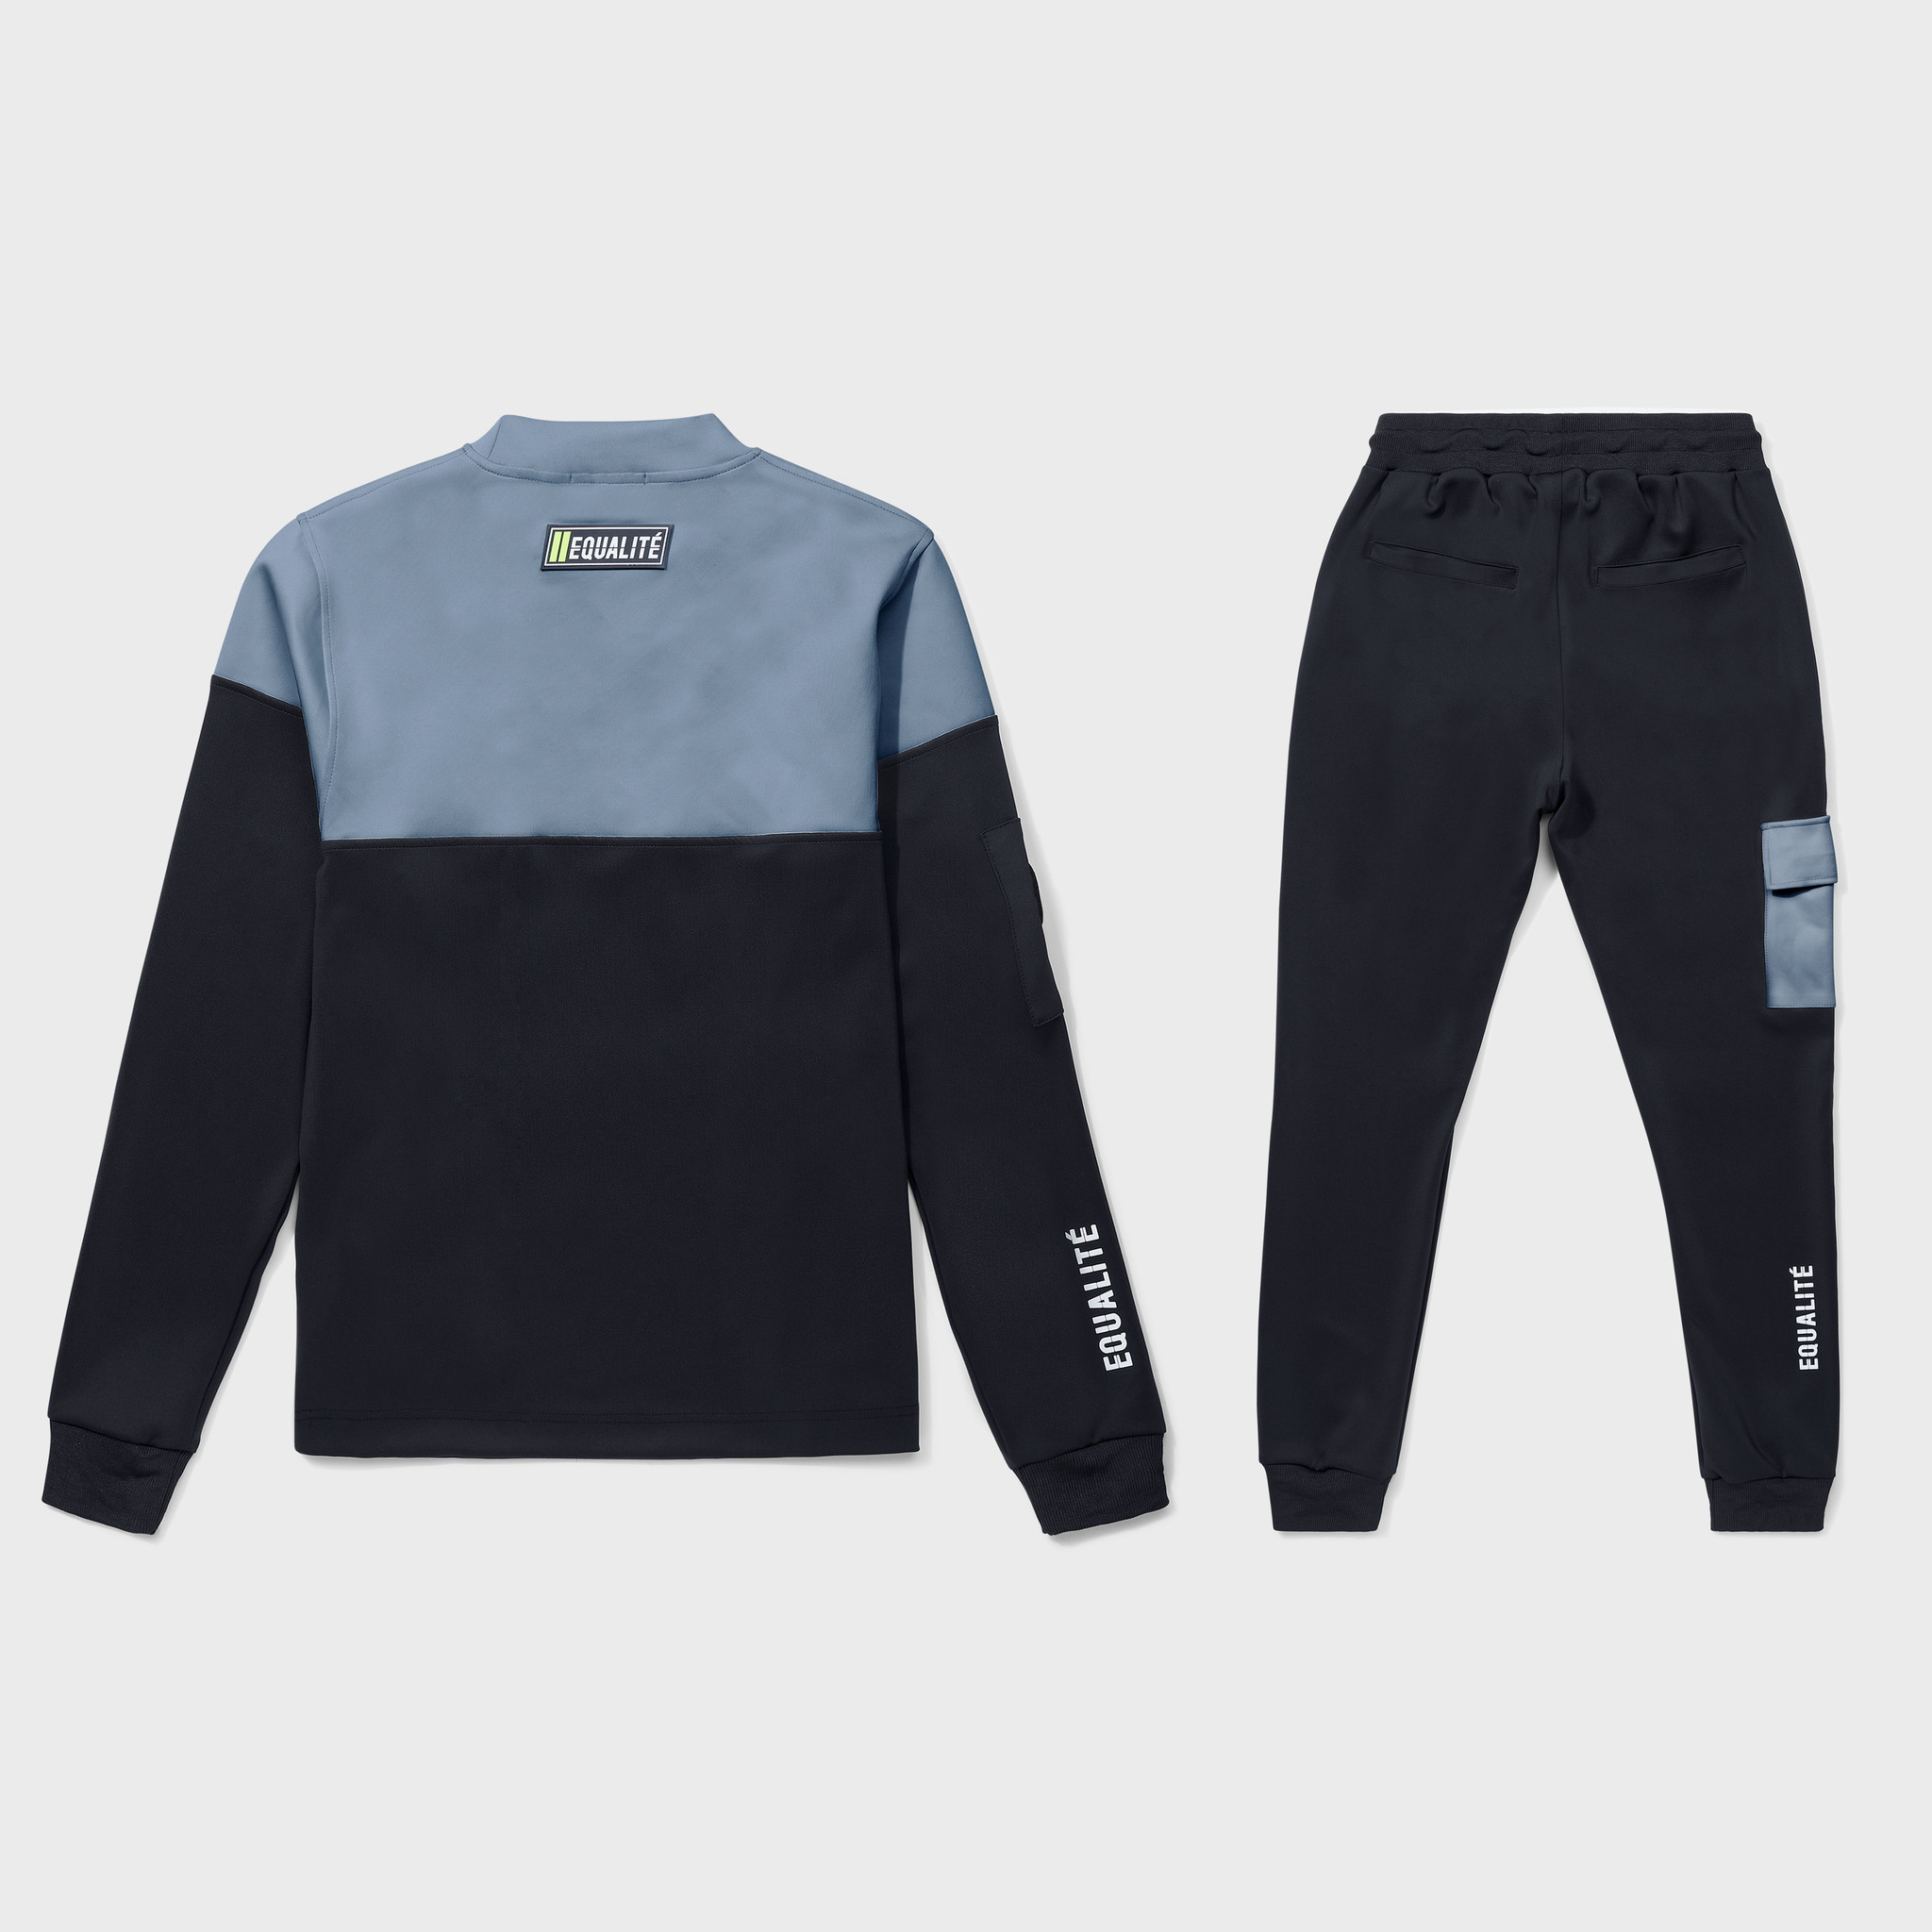 FUTURE POLYESTER TRACKSUIT BLACK & GREY-2